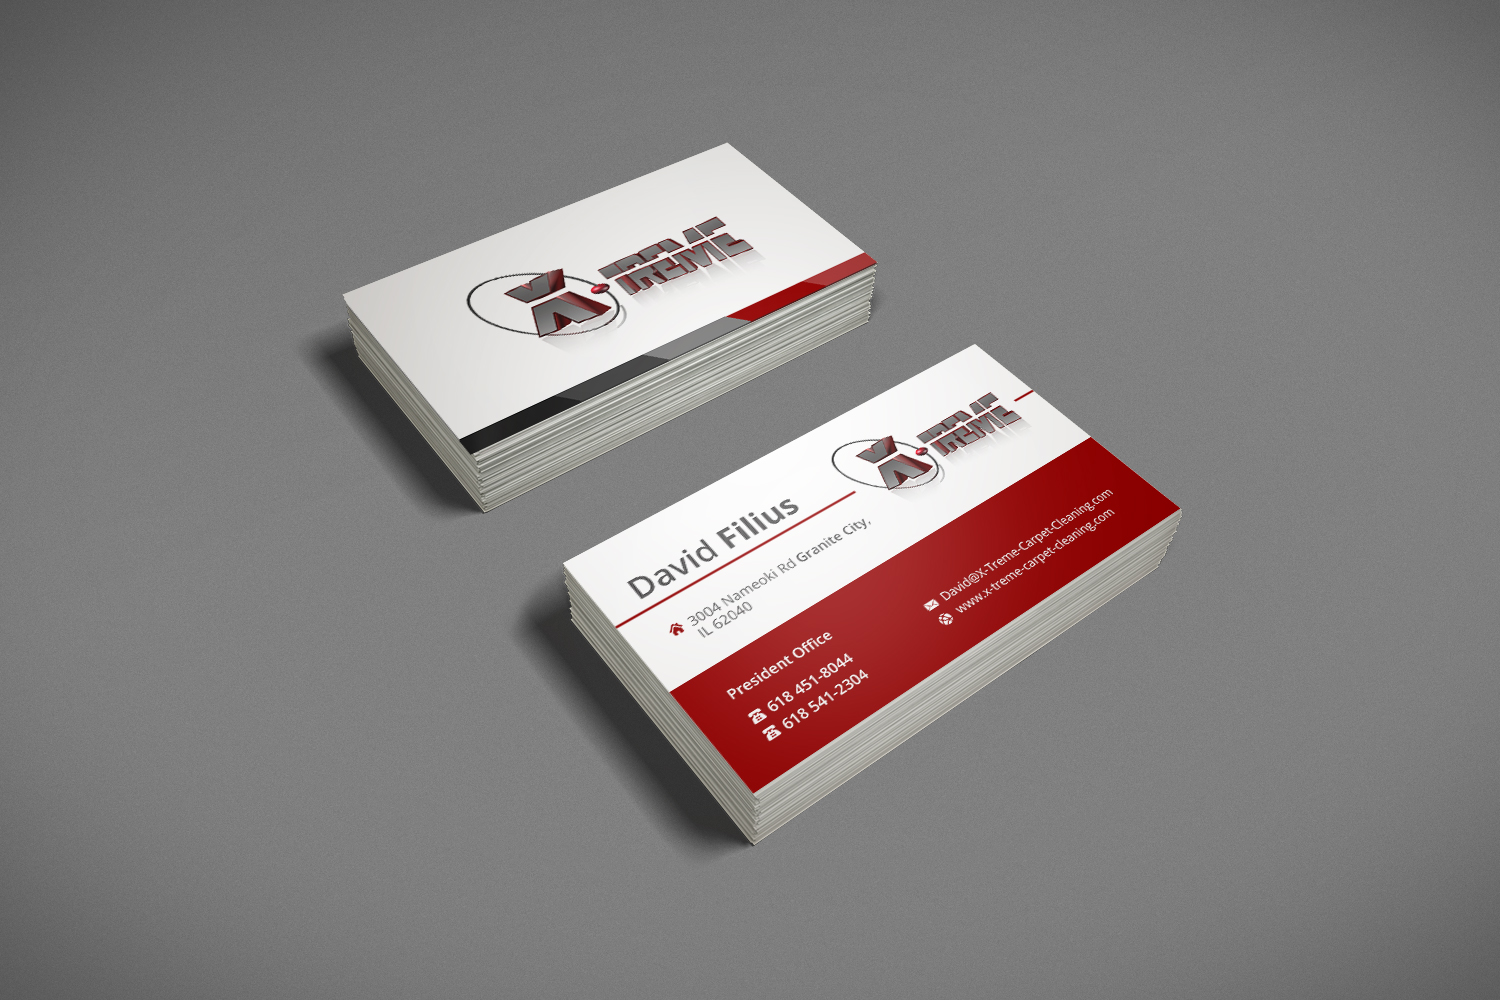 Business card design for david filius by luchyan design 6566642 business card design by luchyan for carpet cleaning business sesighn design 6566642 baanklon Gallery